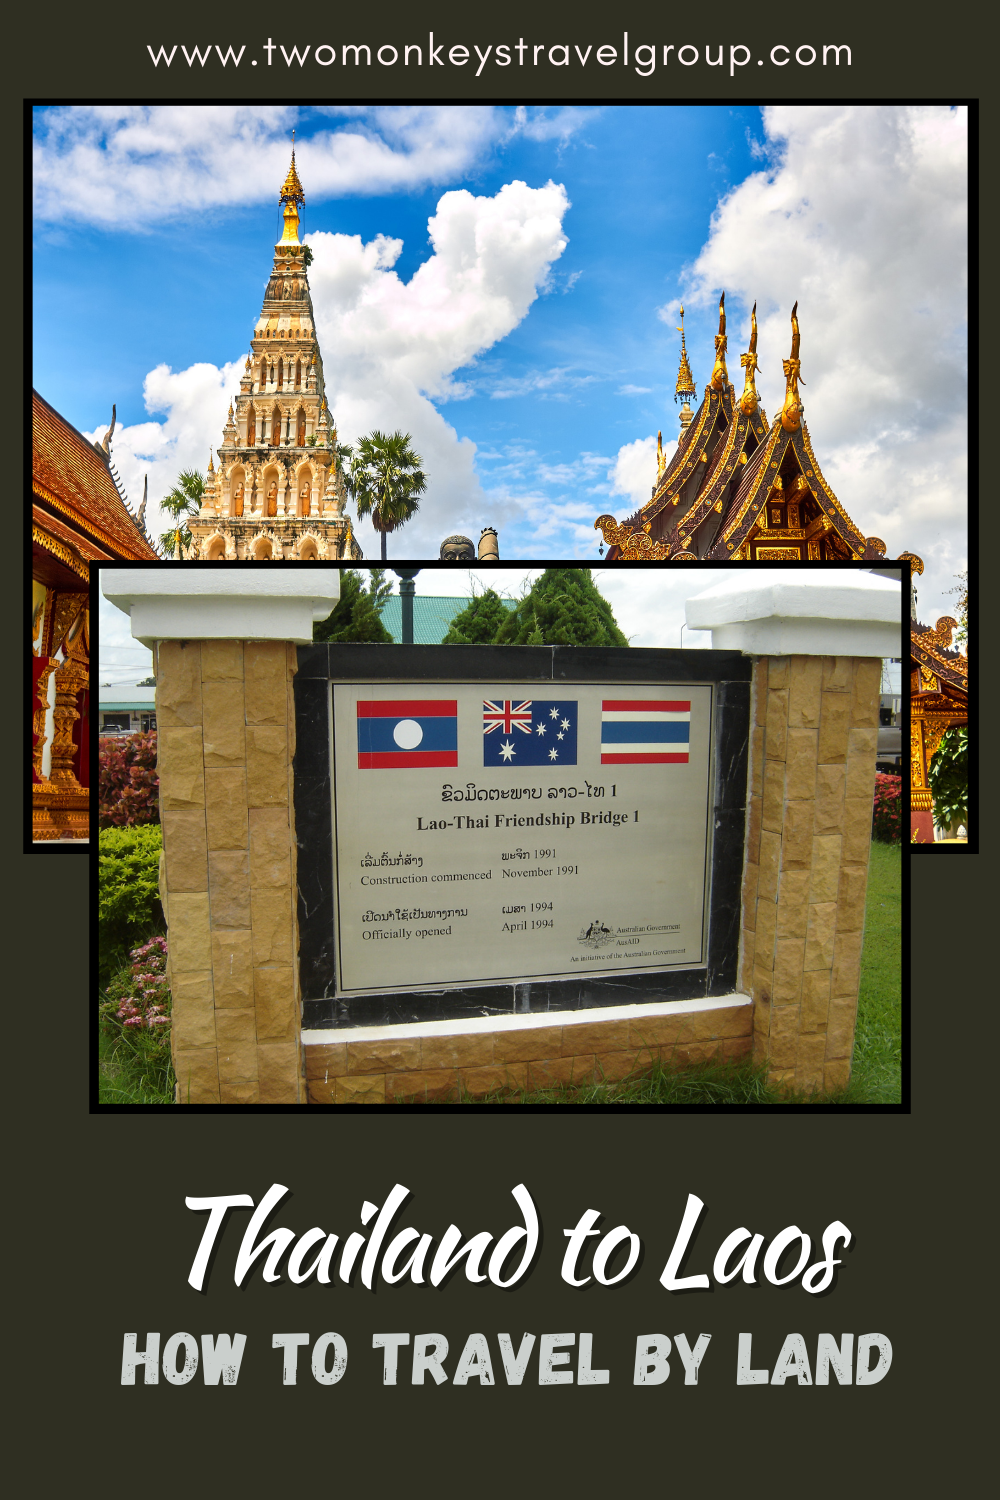 How to Travel by Land from Thailand to Laos (A Backpacker's Guide)